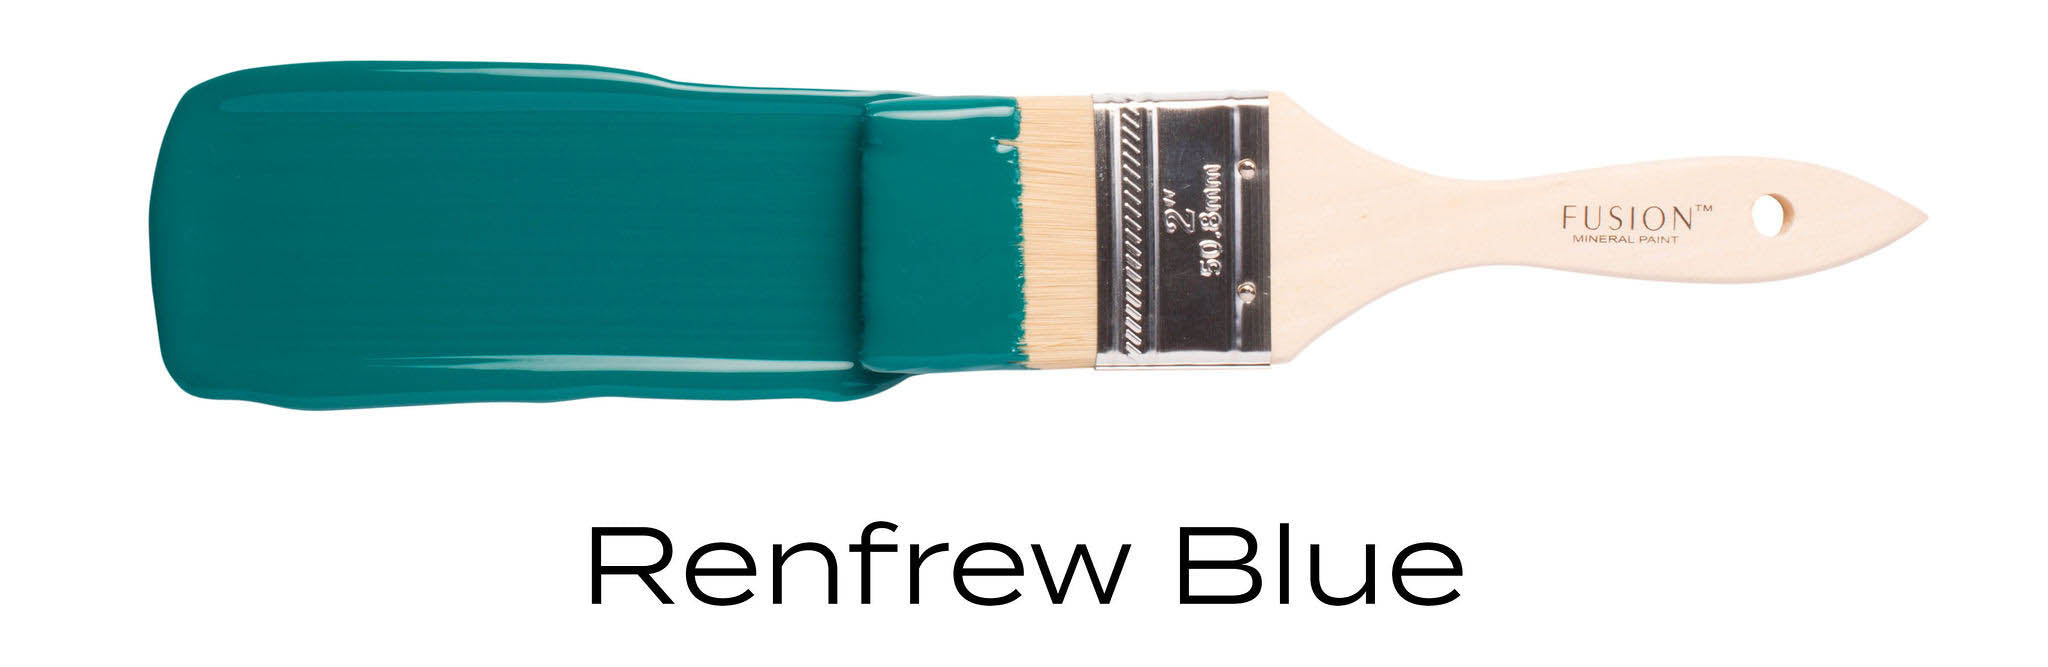 Renfrew Blue teal furniture paint by fusion mineral paint